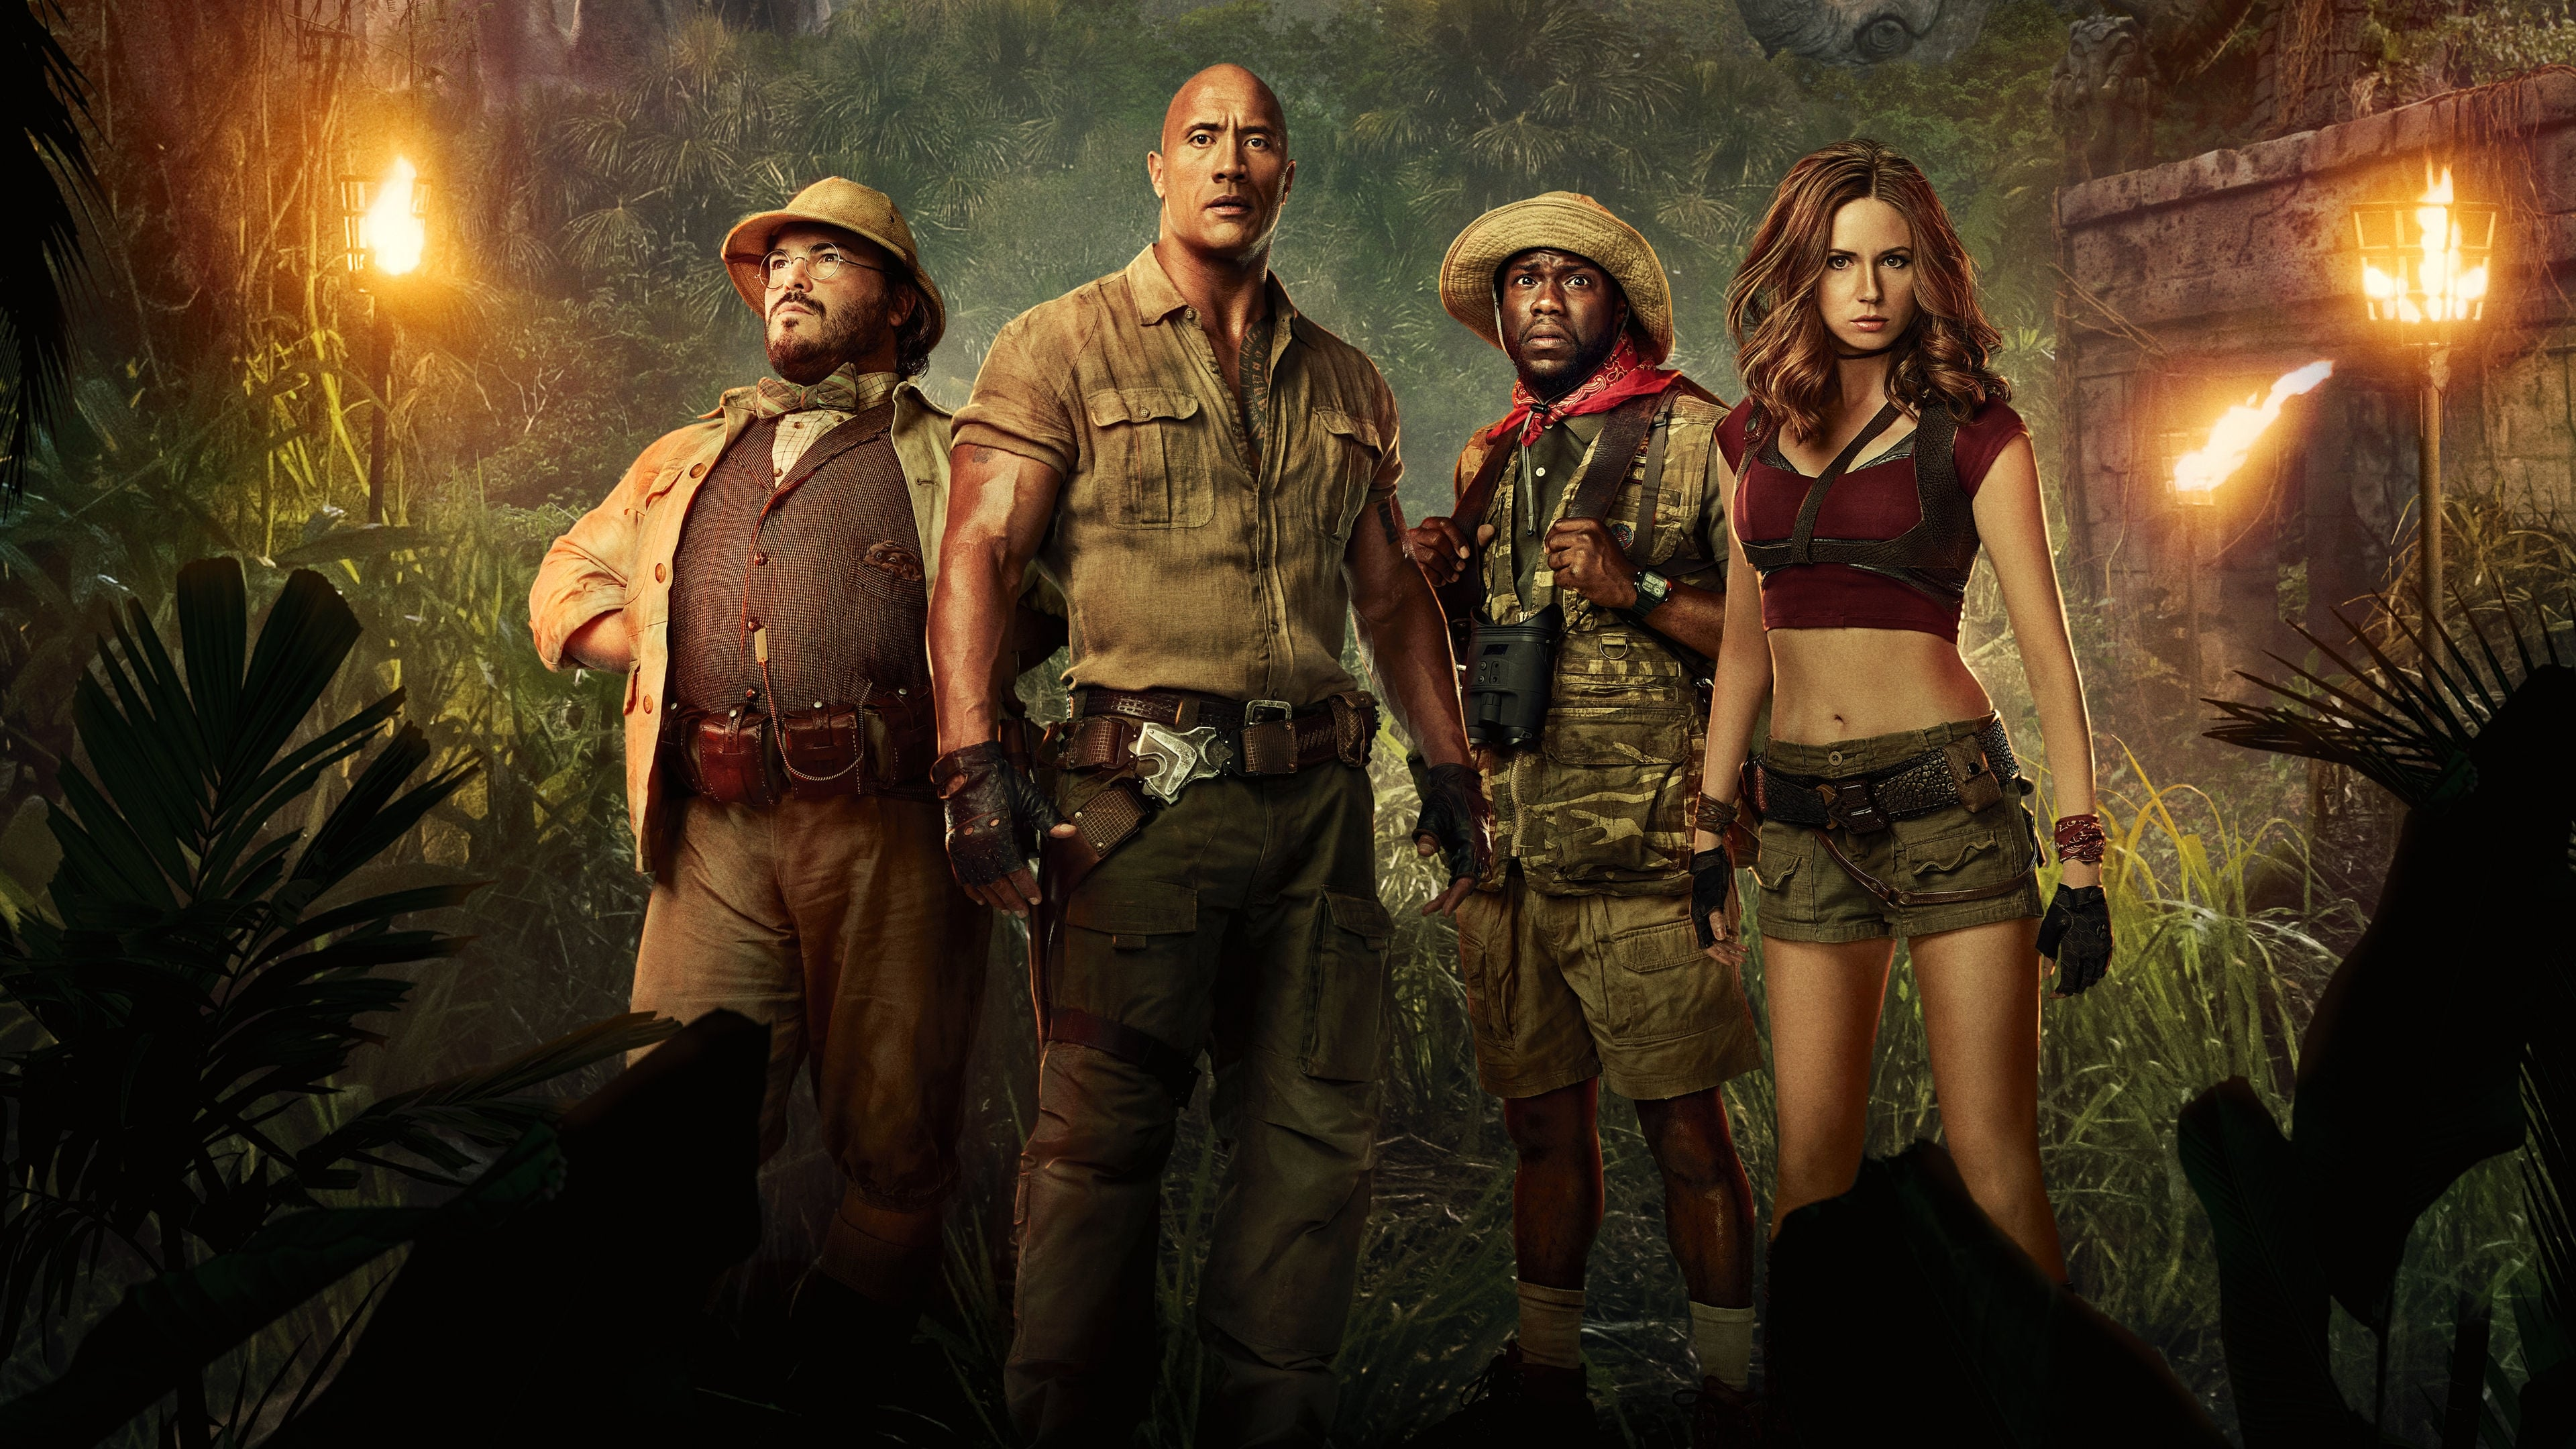 ჯუმანჯი 2 / Jumanji: Welcome to the Jungle